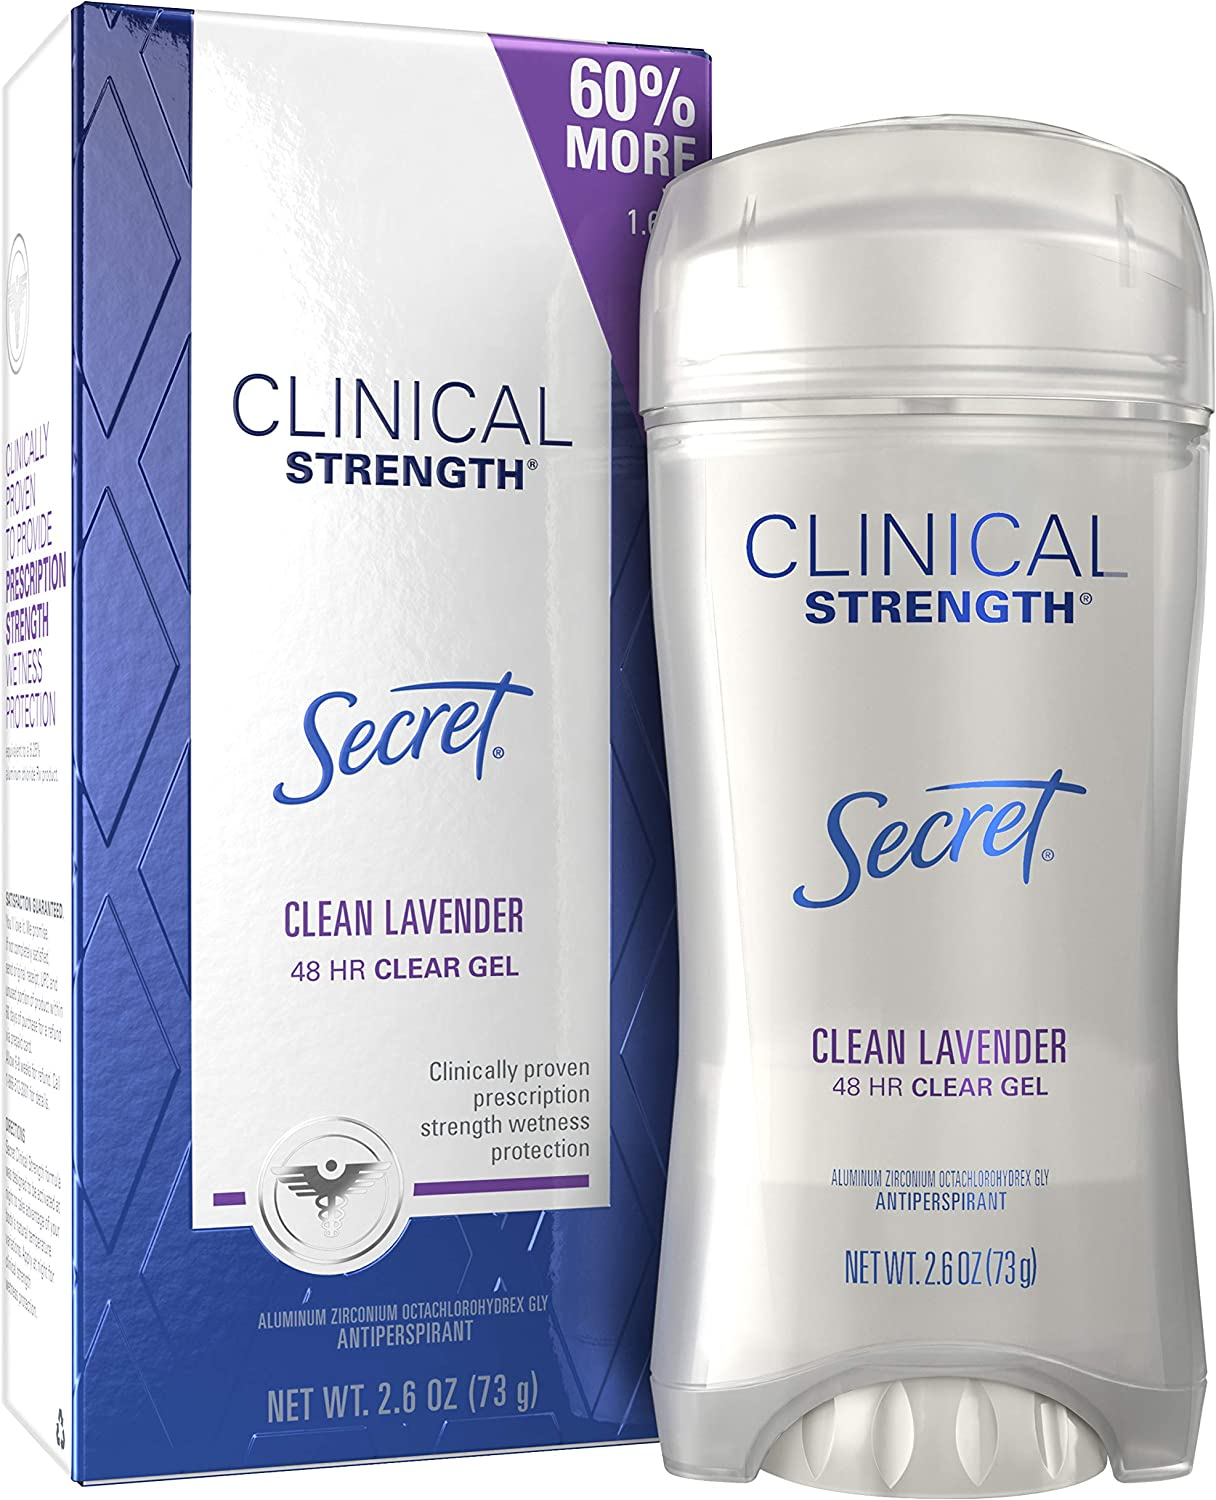 Secret Clinical Strength Antiperspirant and Deodorant for Women Clear Gel, Clean Lavender 2.6 oz